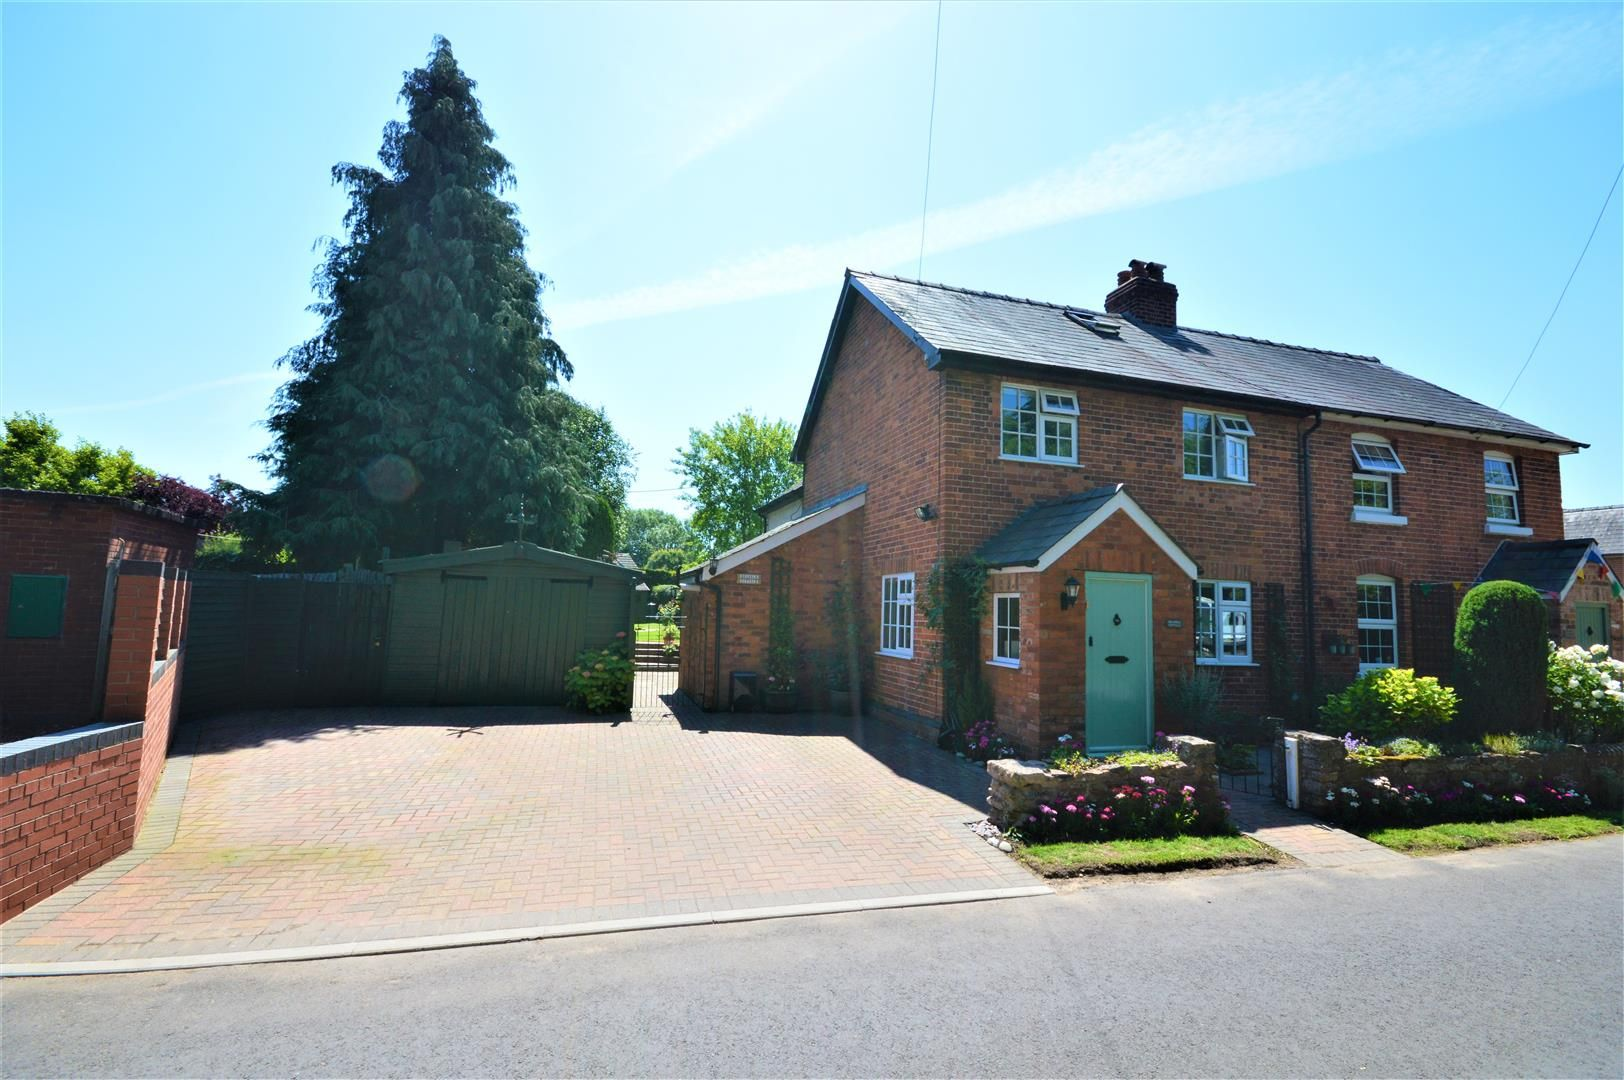 3 bed semi-detached for sale in Madley, HR2